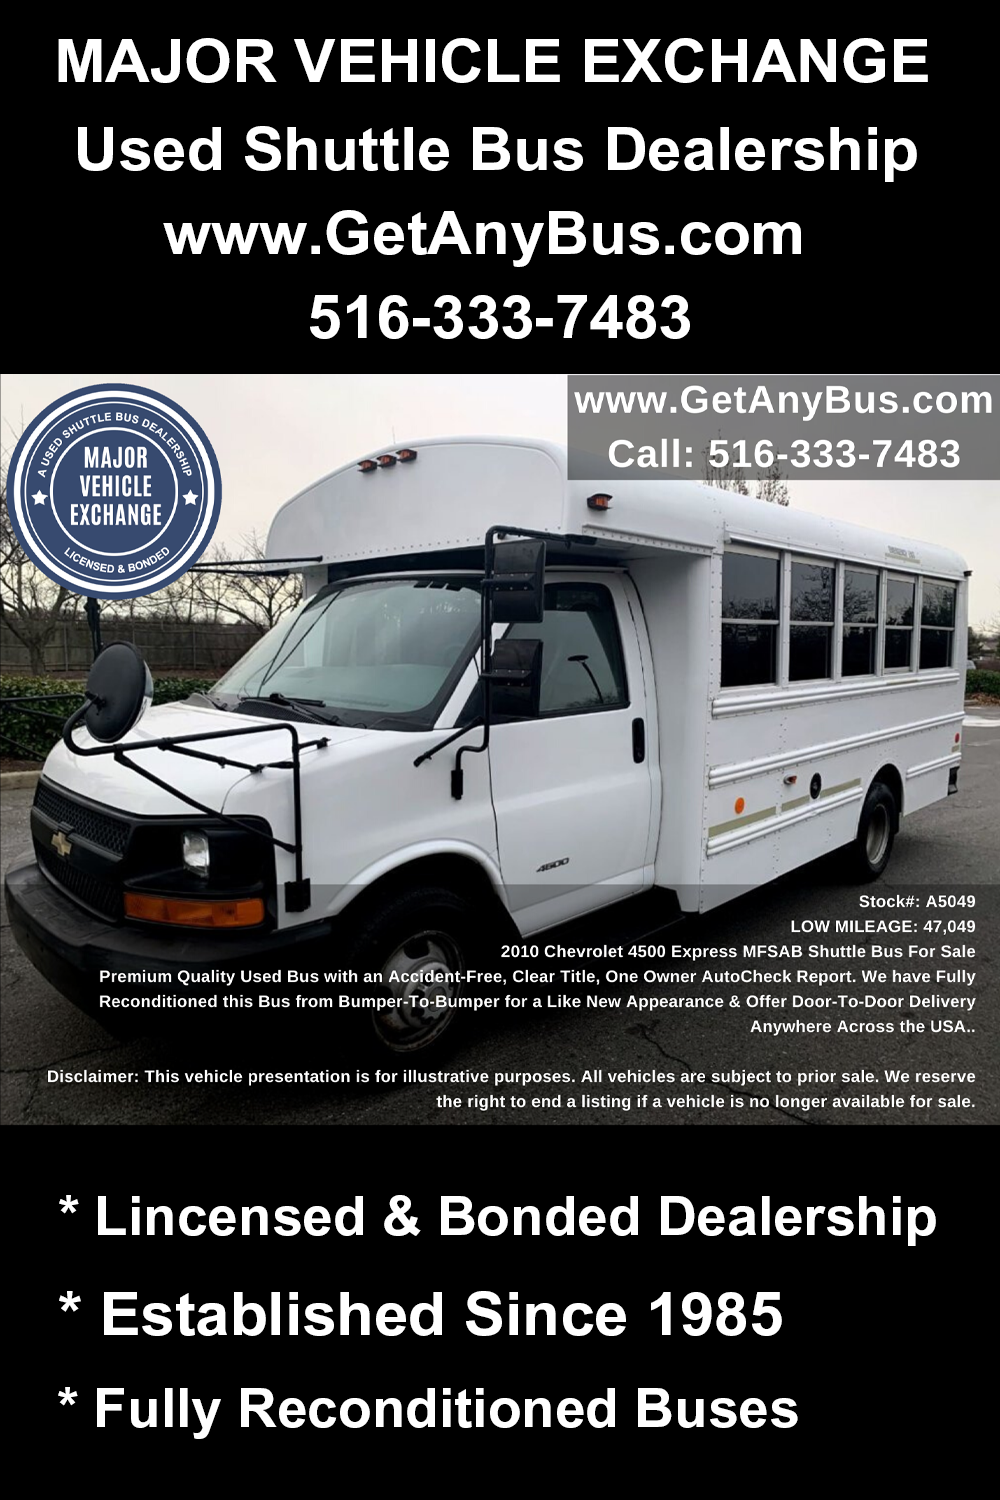 Movie Buses For Sale 2010 Chevrolet 4500 Express Mfsab Shuttle Bus